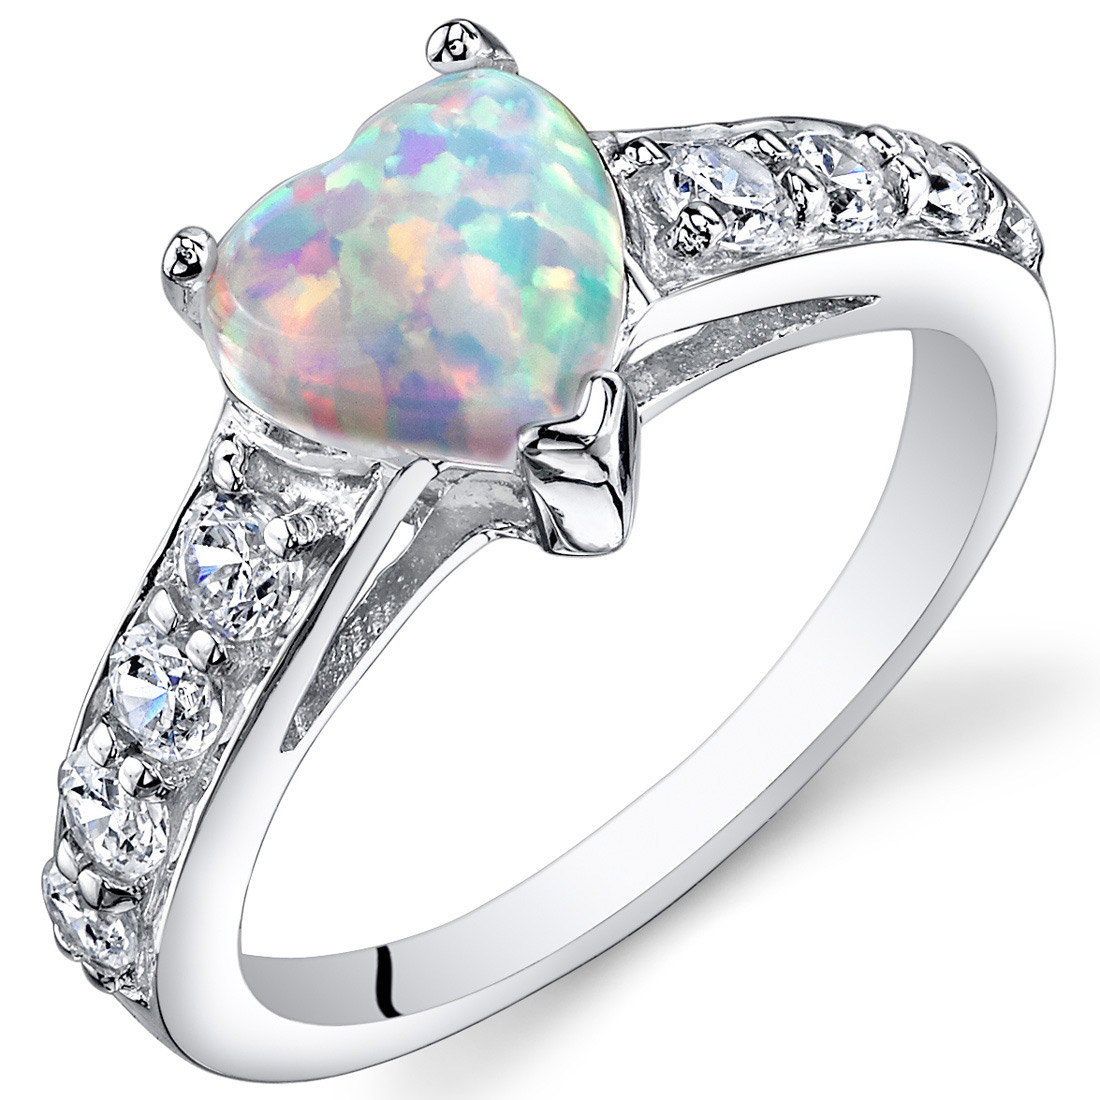 Peora 1.00 Ct Heart Shape Created Opal Ring in Rhodium-Plated Sterling Silver